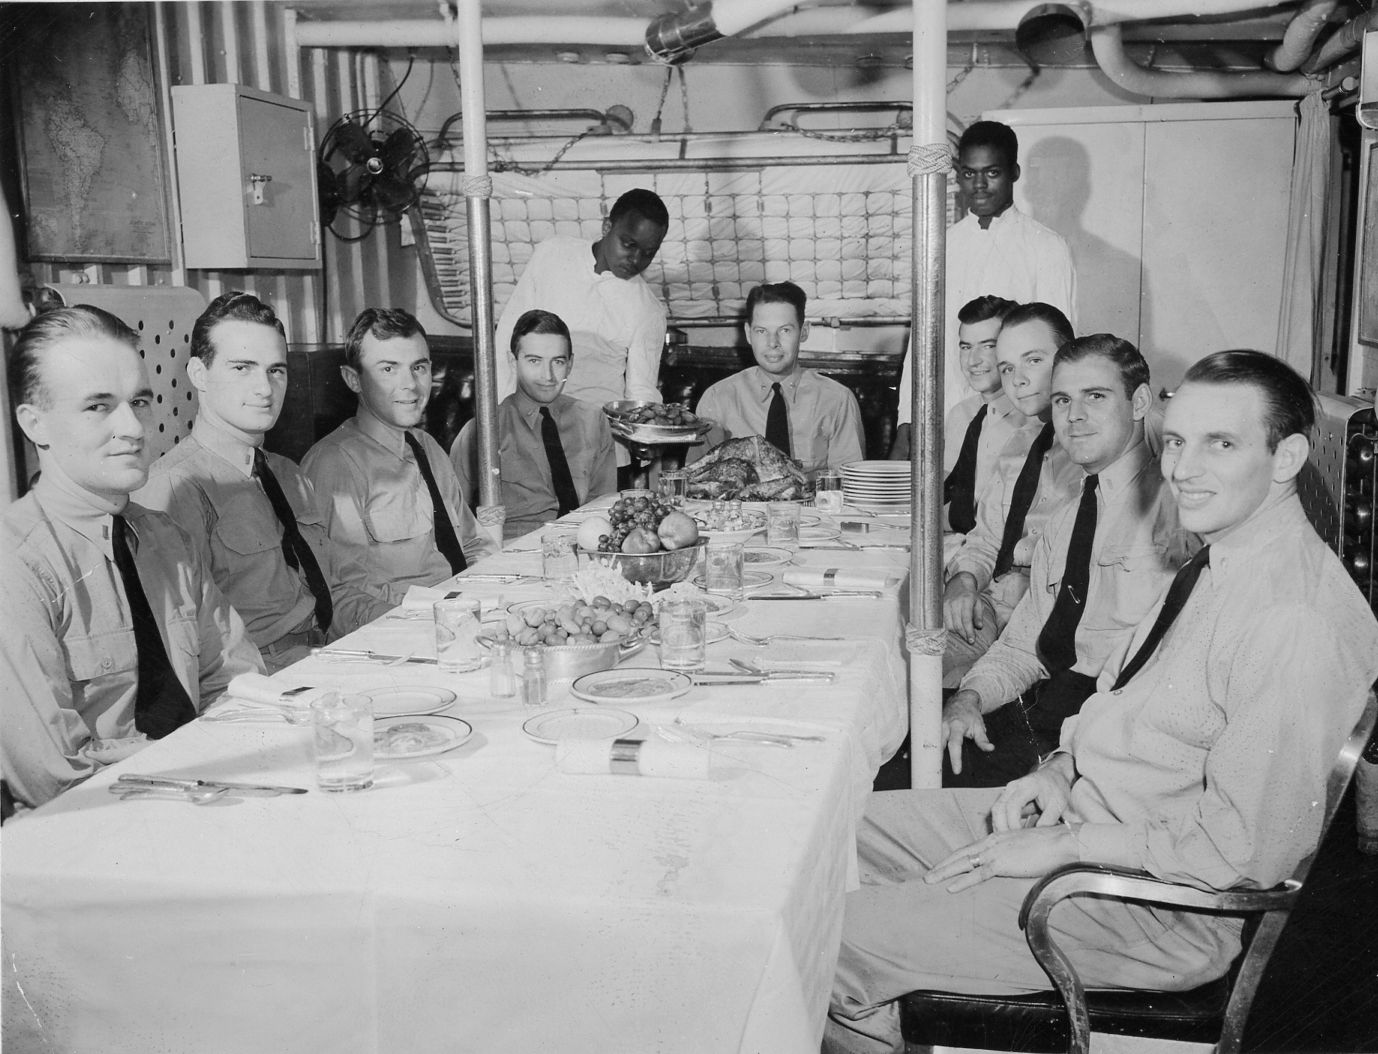 [Photo] Officer dining room a US Navy destroyer while the